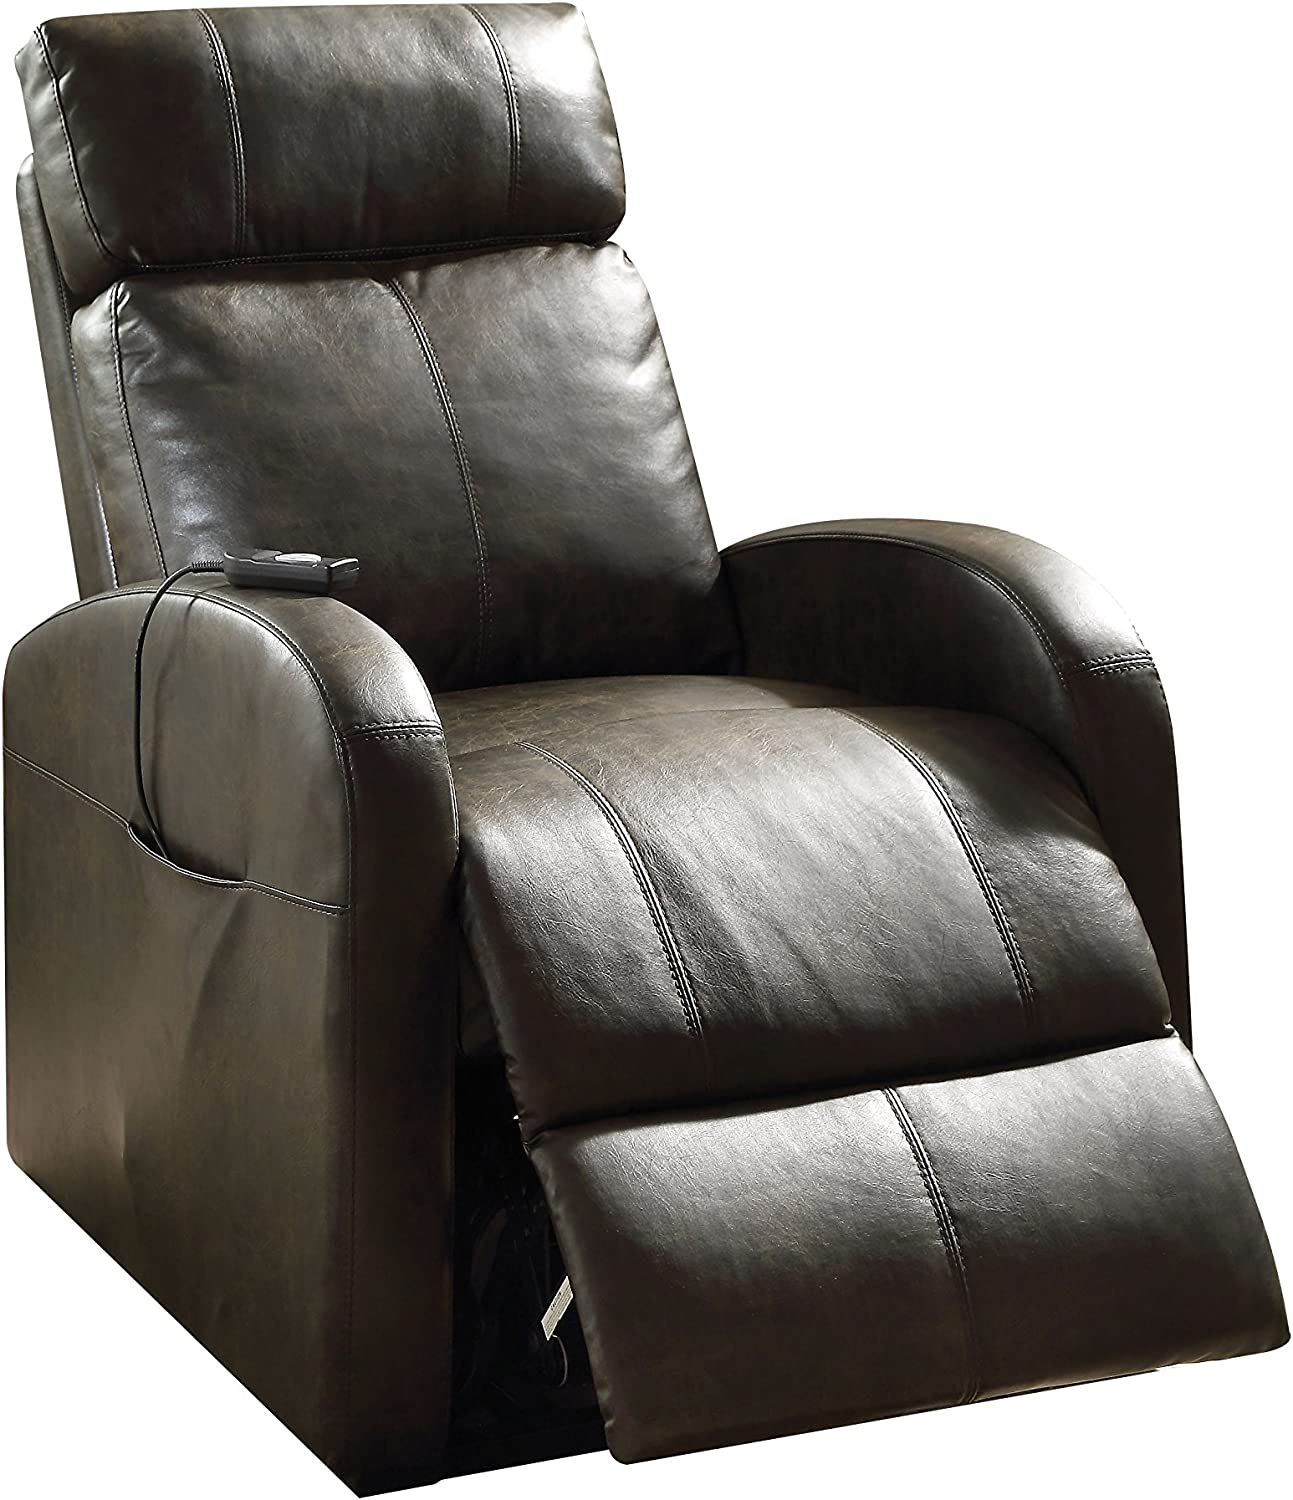 ACME Ricardo Recliner with Power Lift